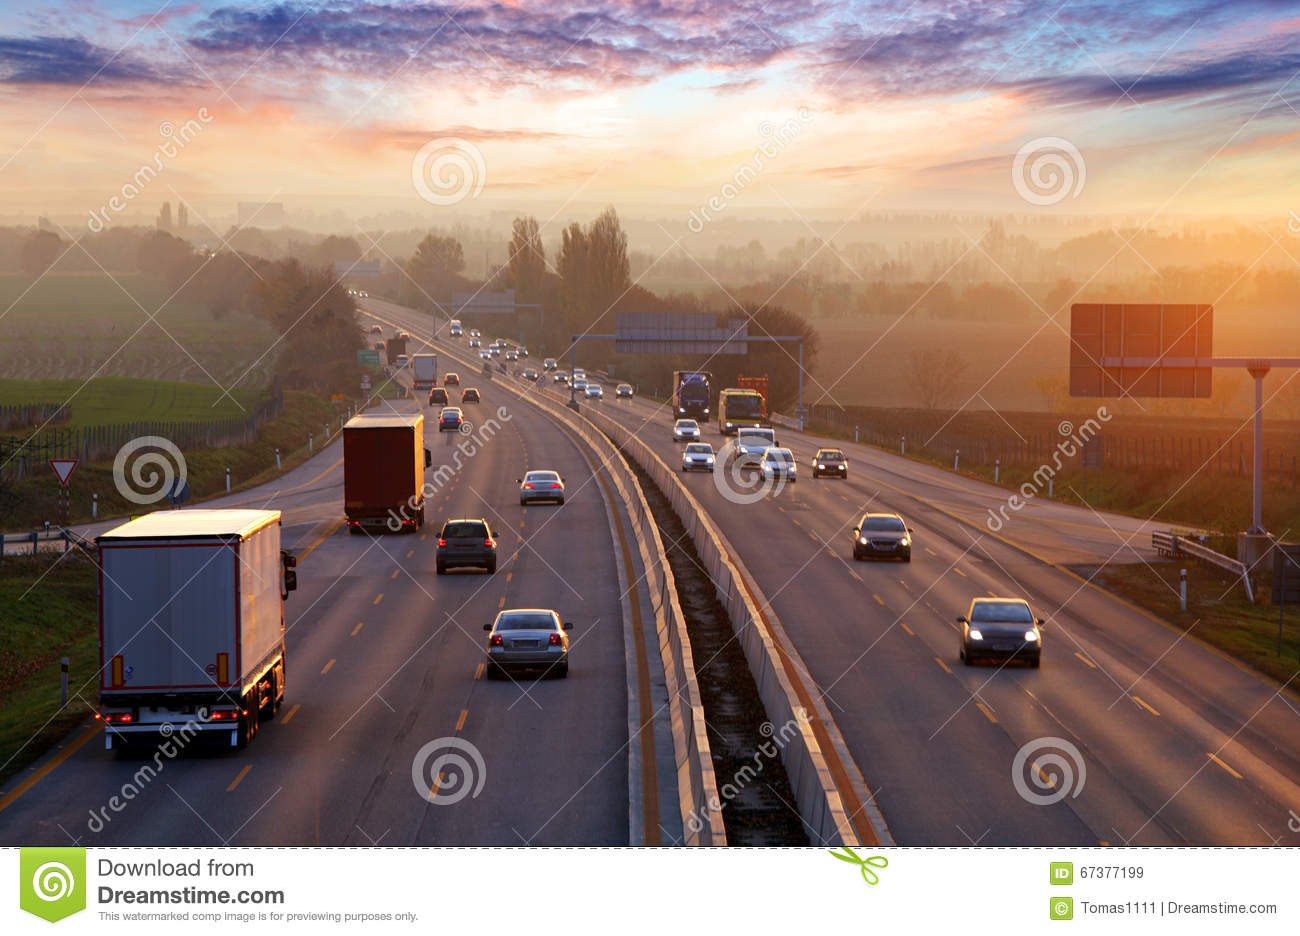 Traffic on highway with cars